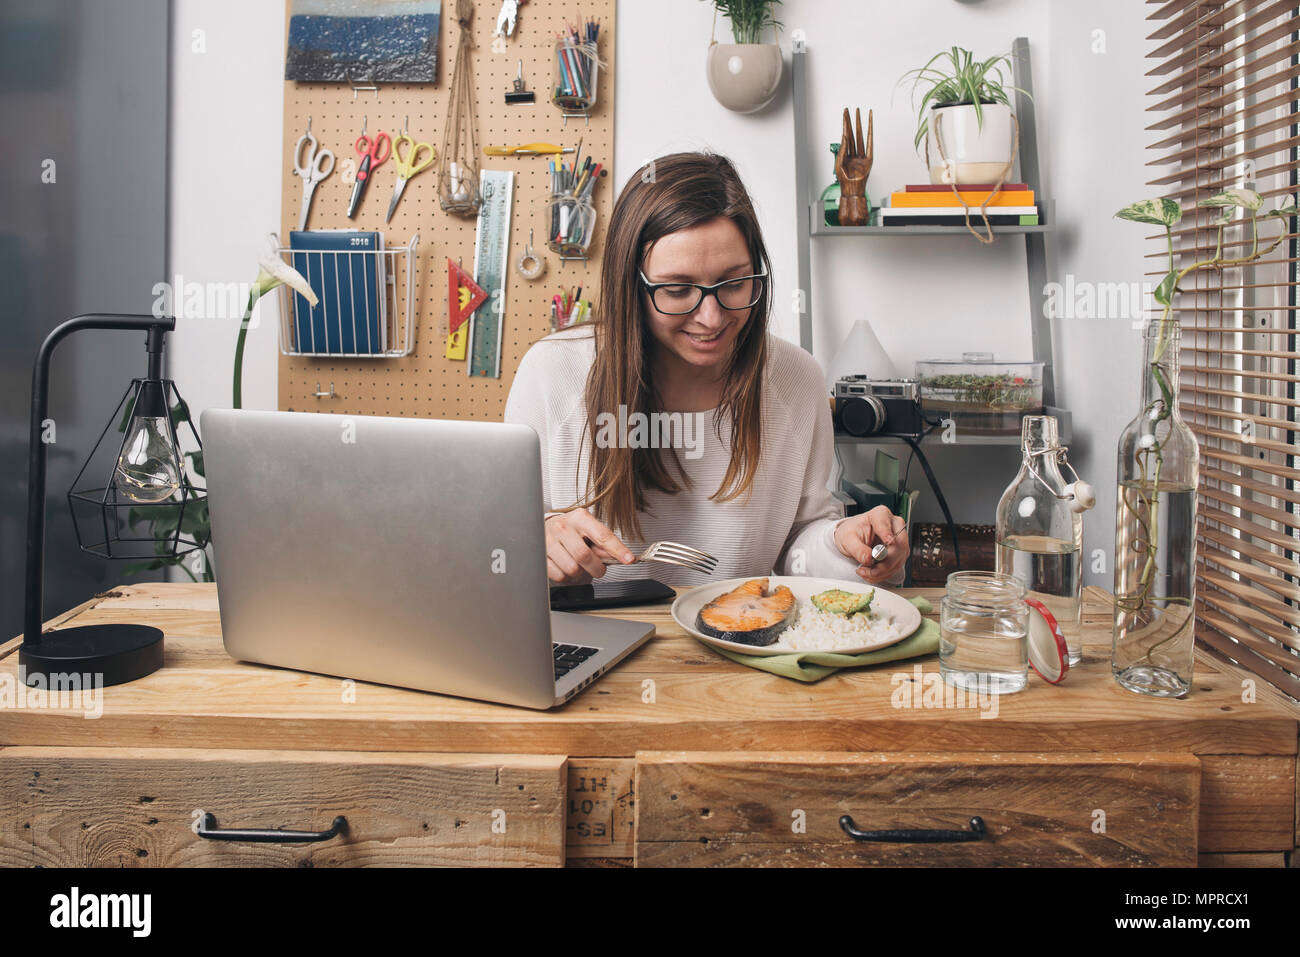 Woman having lunch at wooden table with laptop - Stock Image